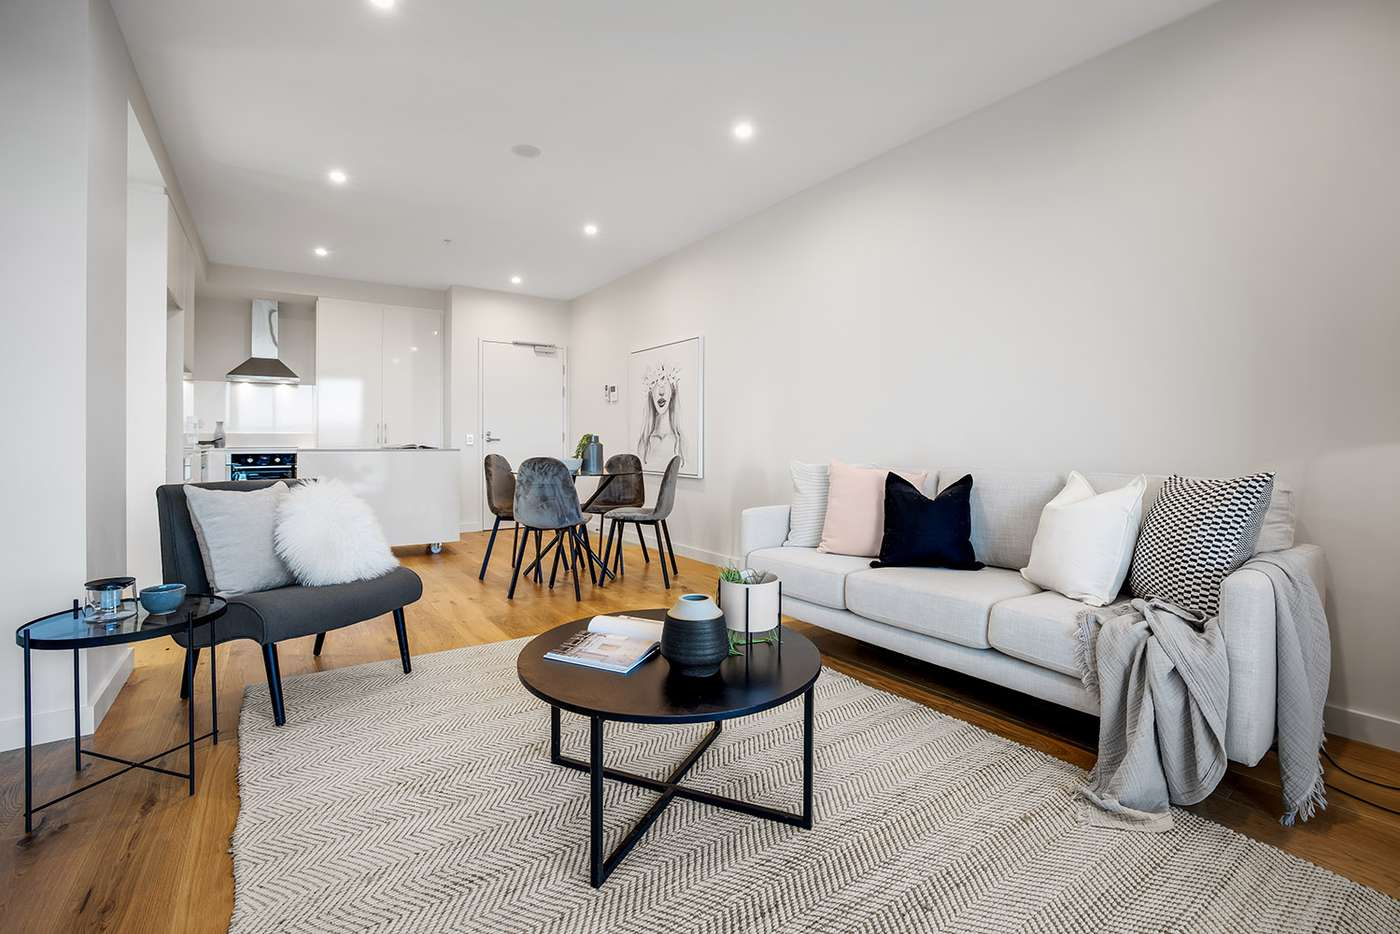 Seventh view of Homely apartment listing, 901/297 Pirie Street, Adelaide SA 5000